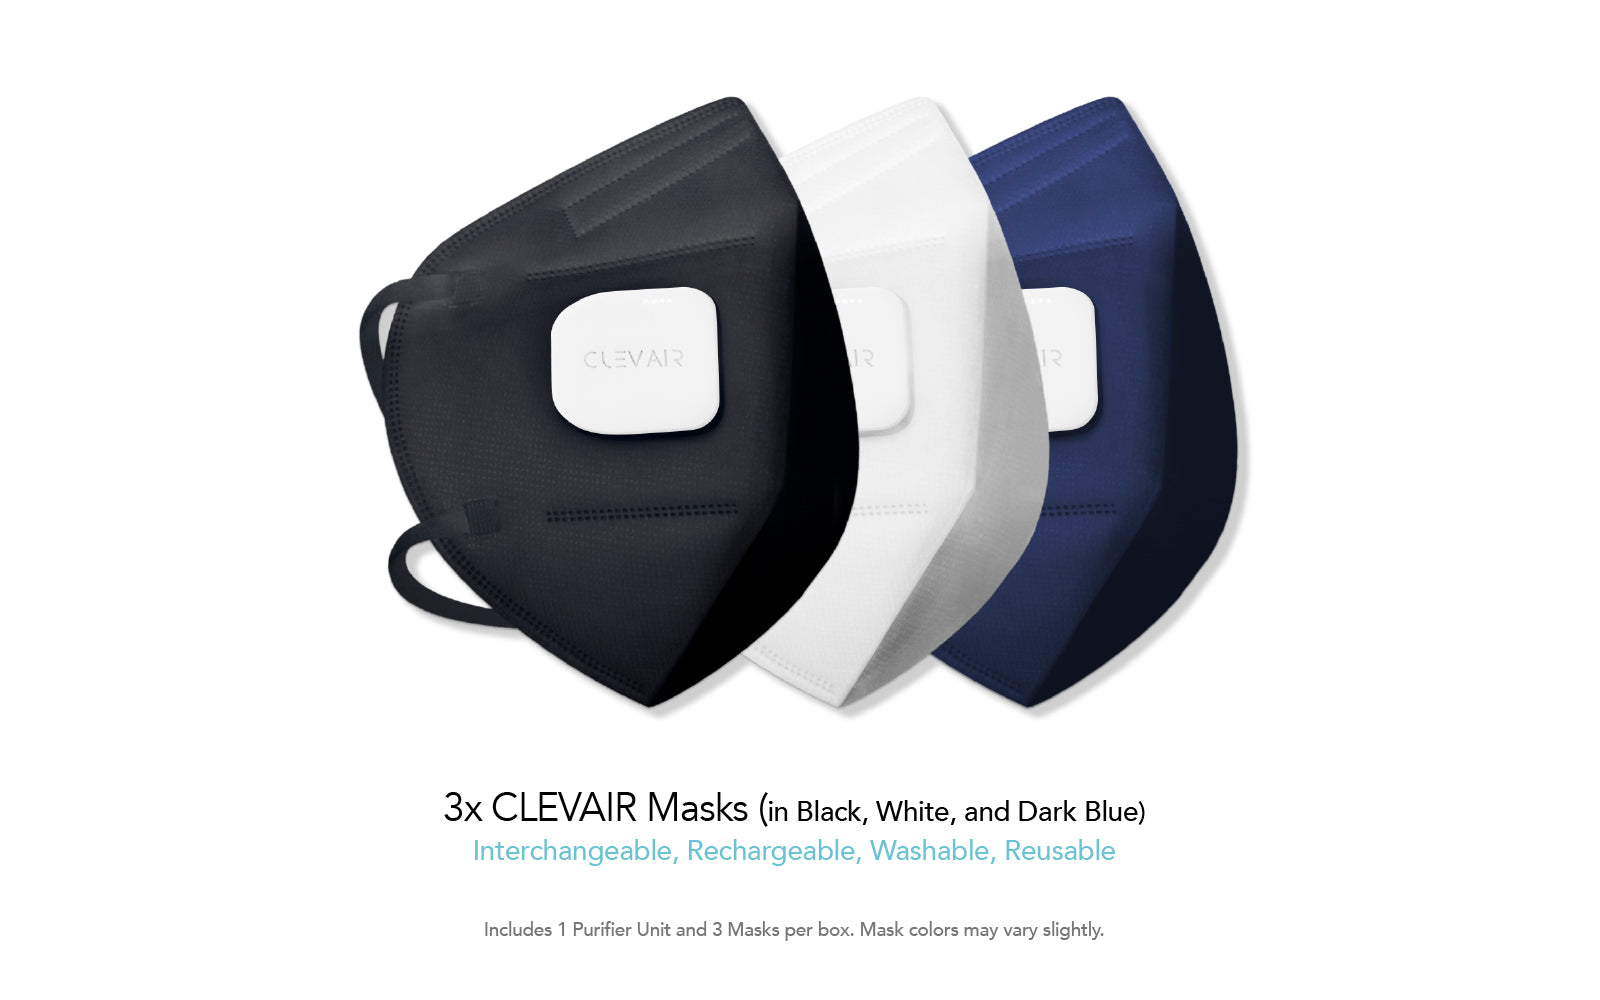 3x CLEVAIR Masks in Black, White, and Dark Blue. Interchangeable, Rechargeable, Washable, Resusable. Mask colors may vary slightly